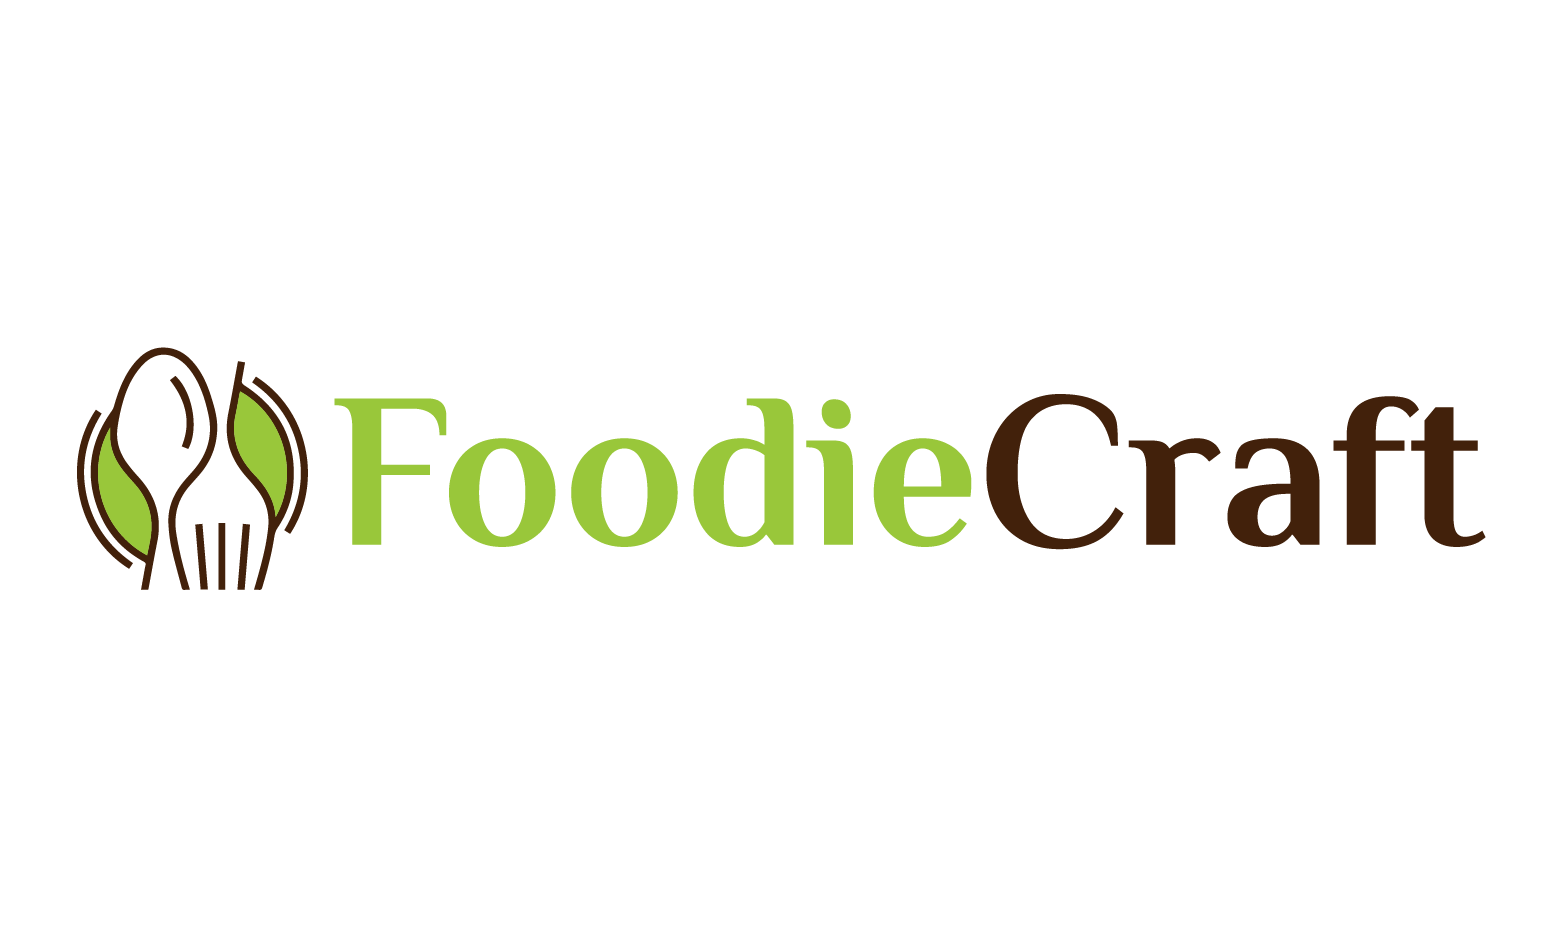 FoodieCraft.com